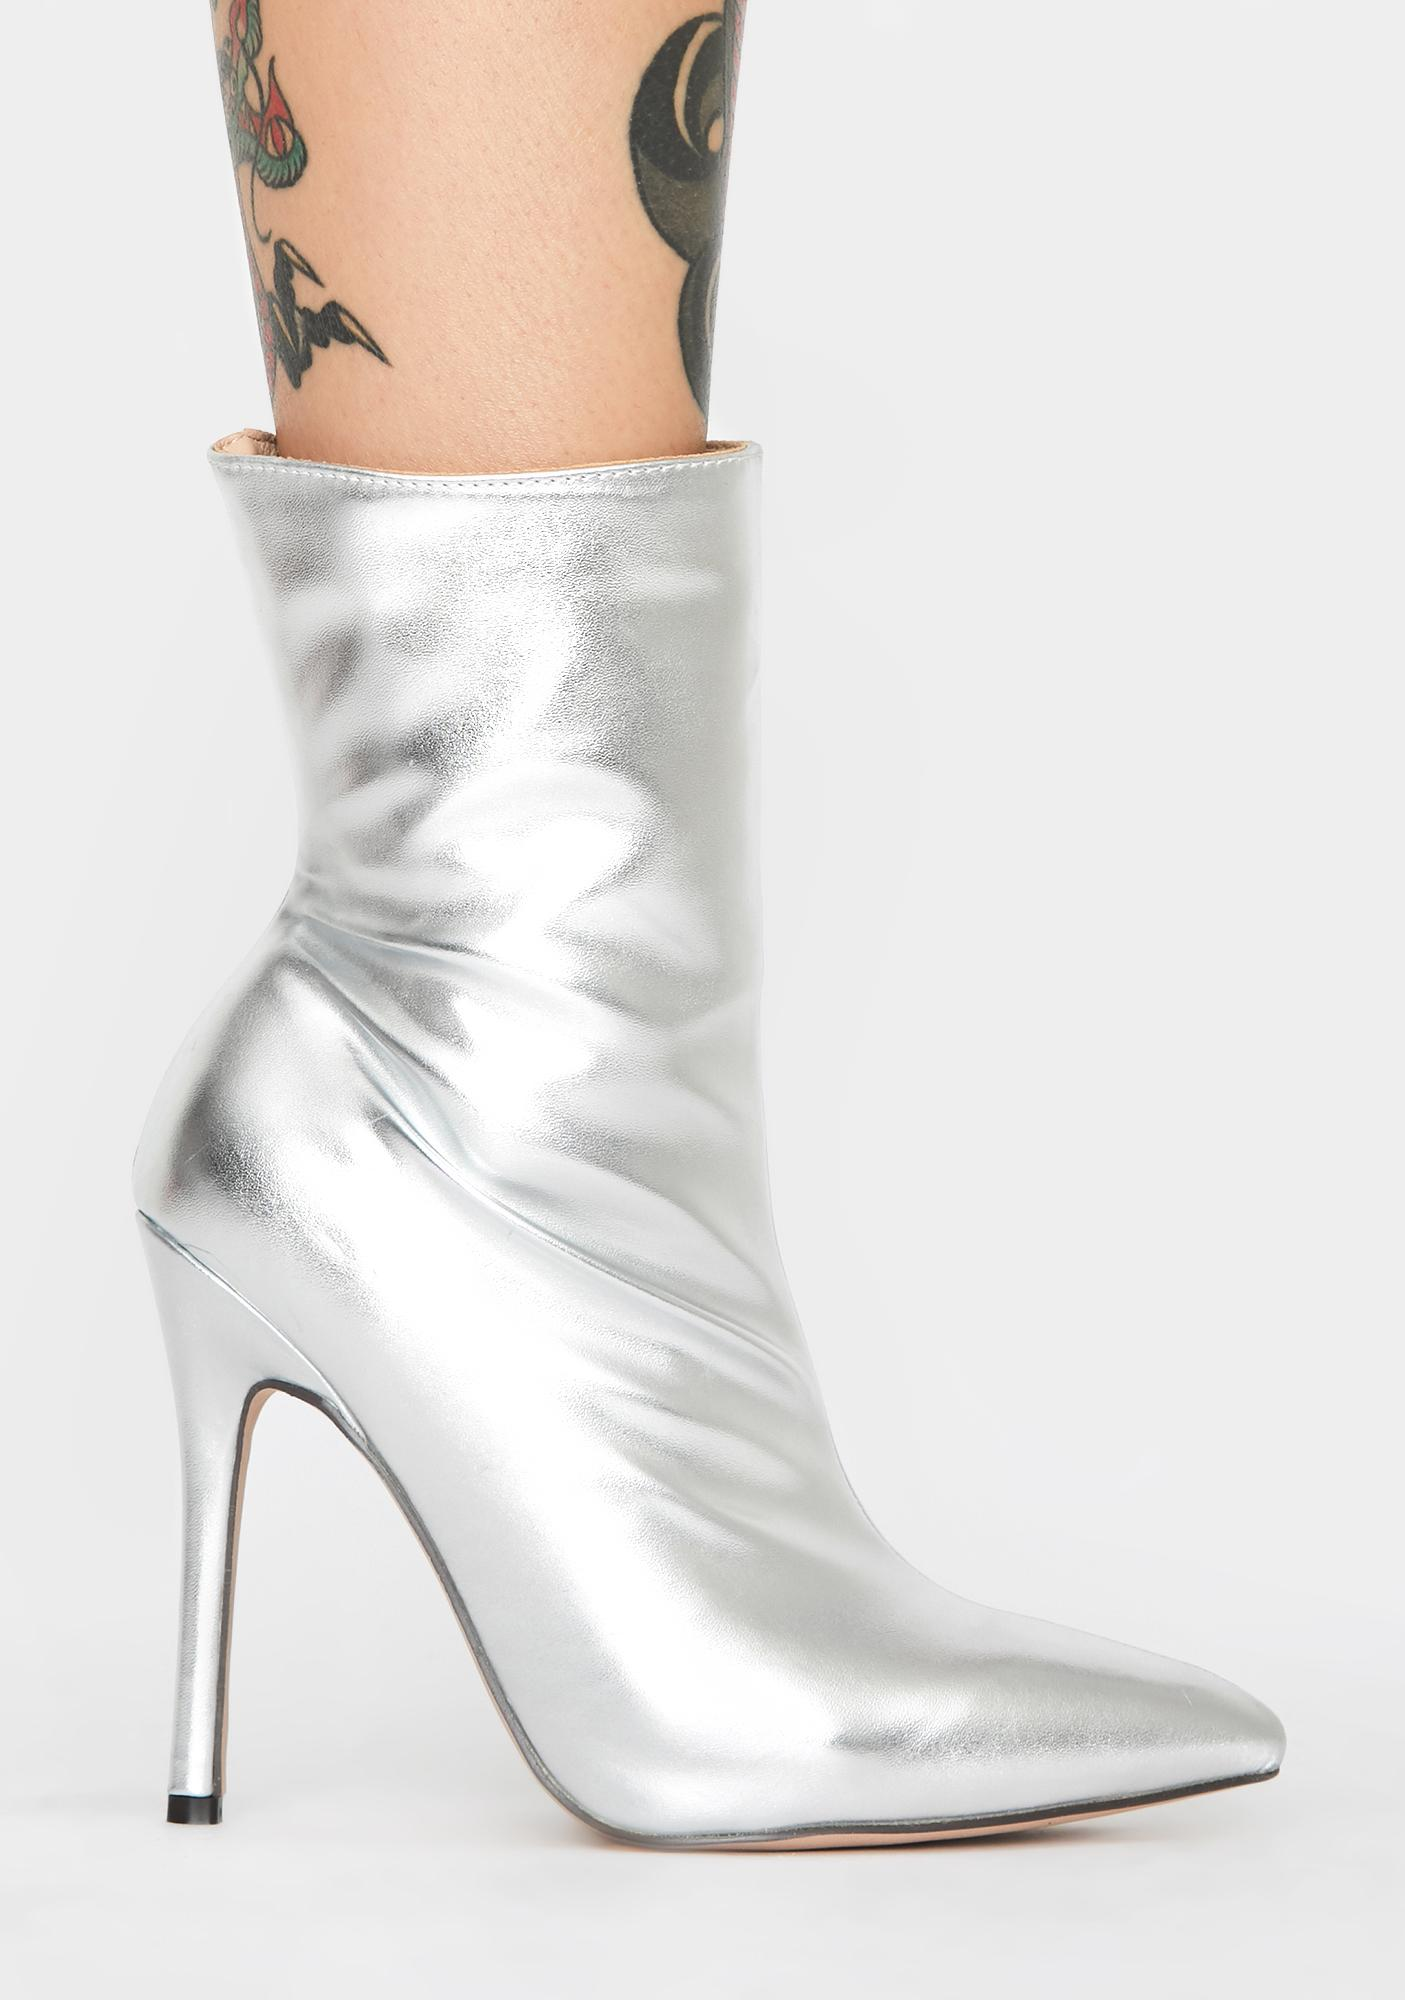 Tread Brightly Ankle Boots